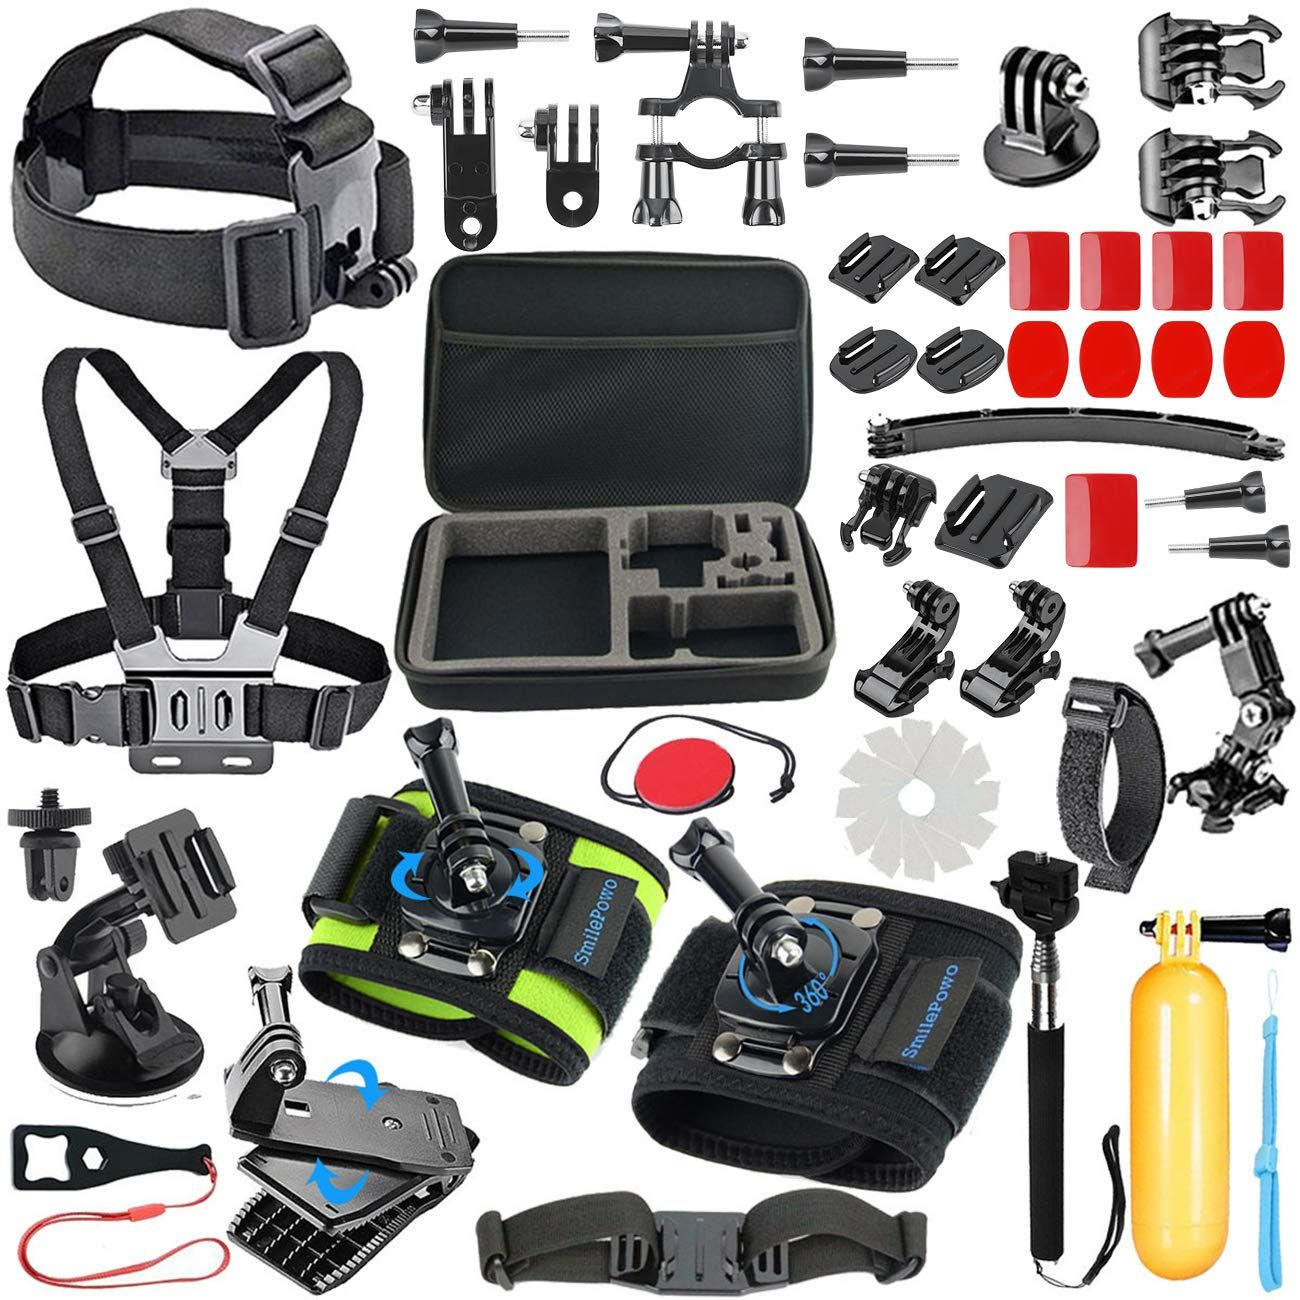 Go Pro Ultimate Combo Kit - 51 in 1 Action Camera Accessory